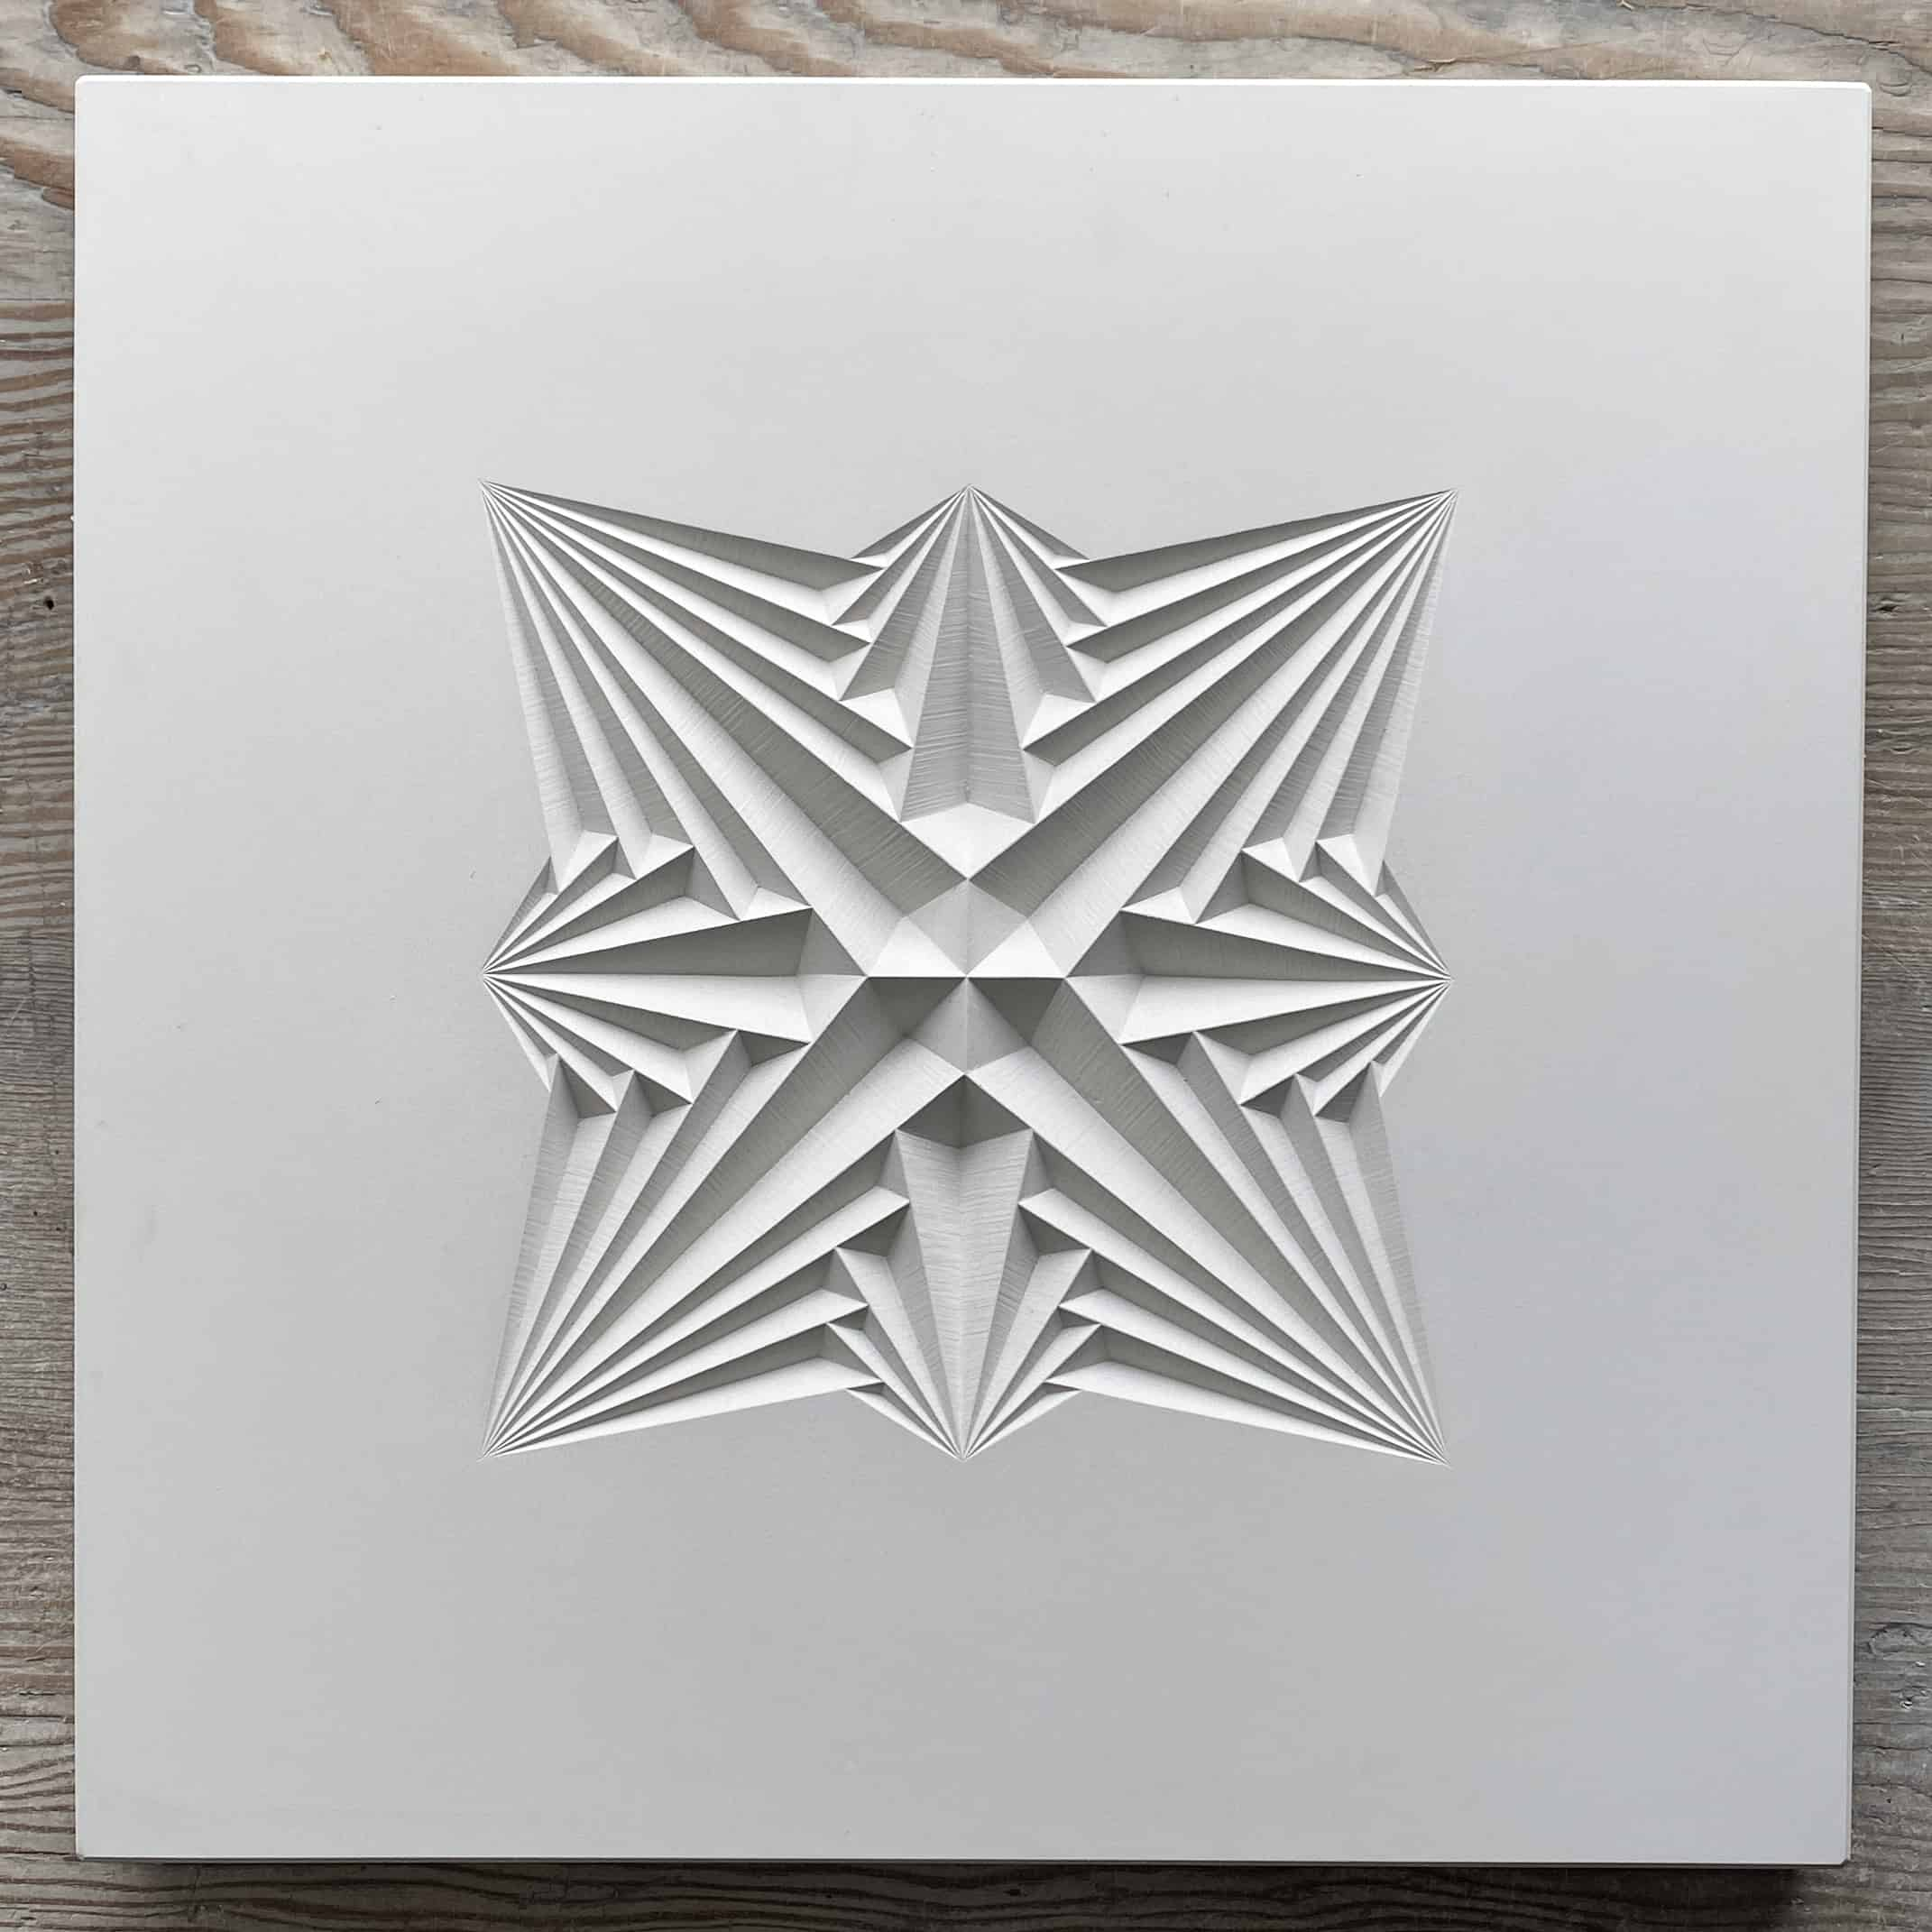 Light coloured cast of geometric carving